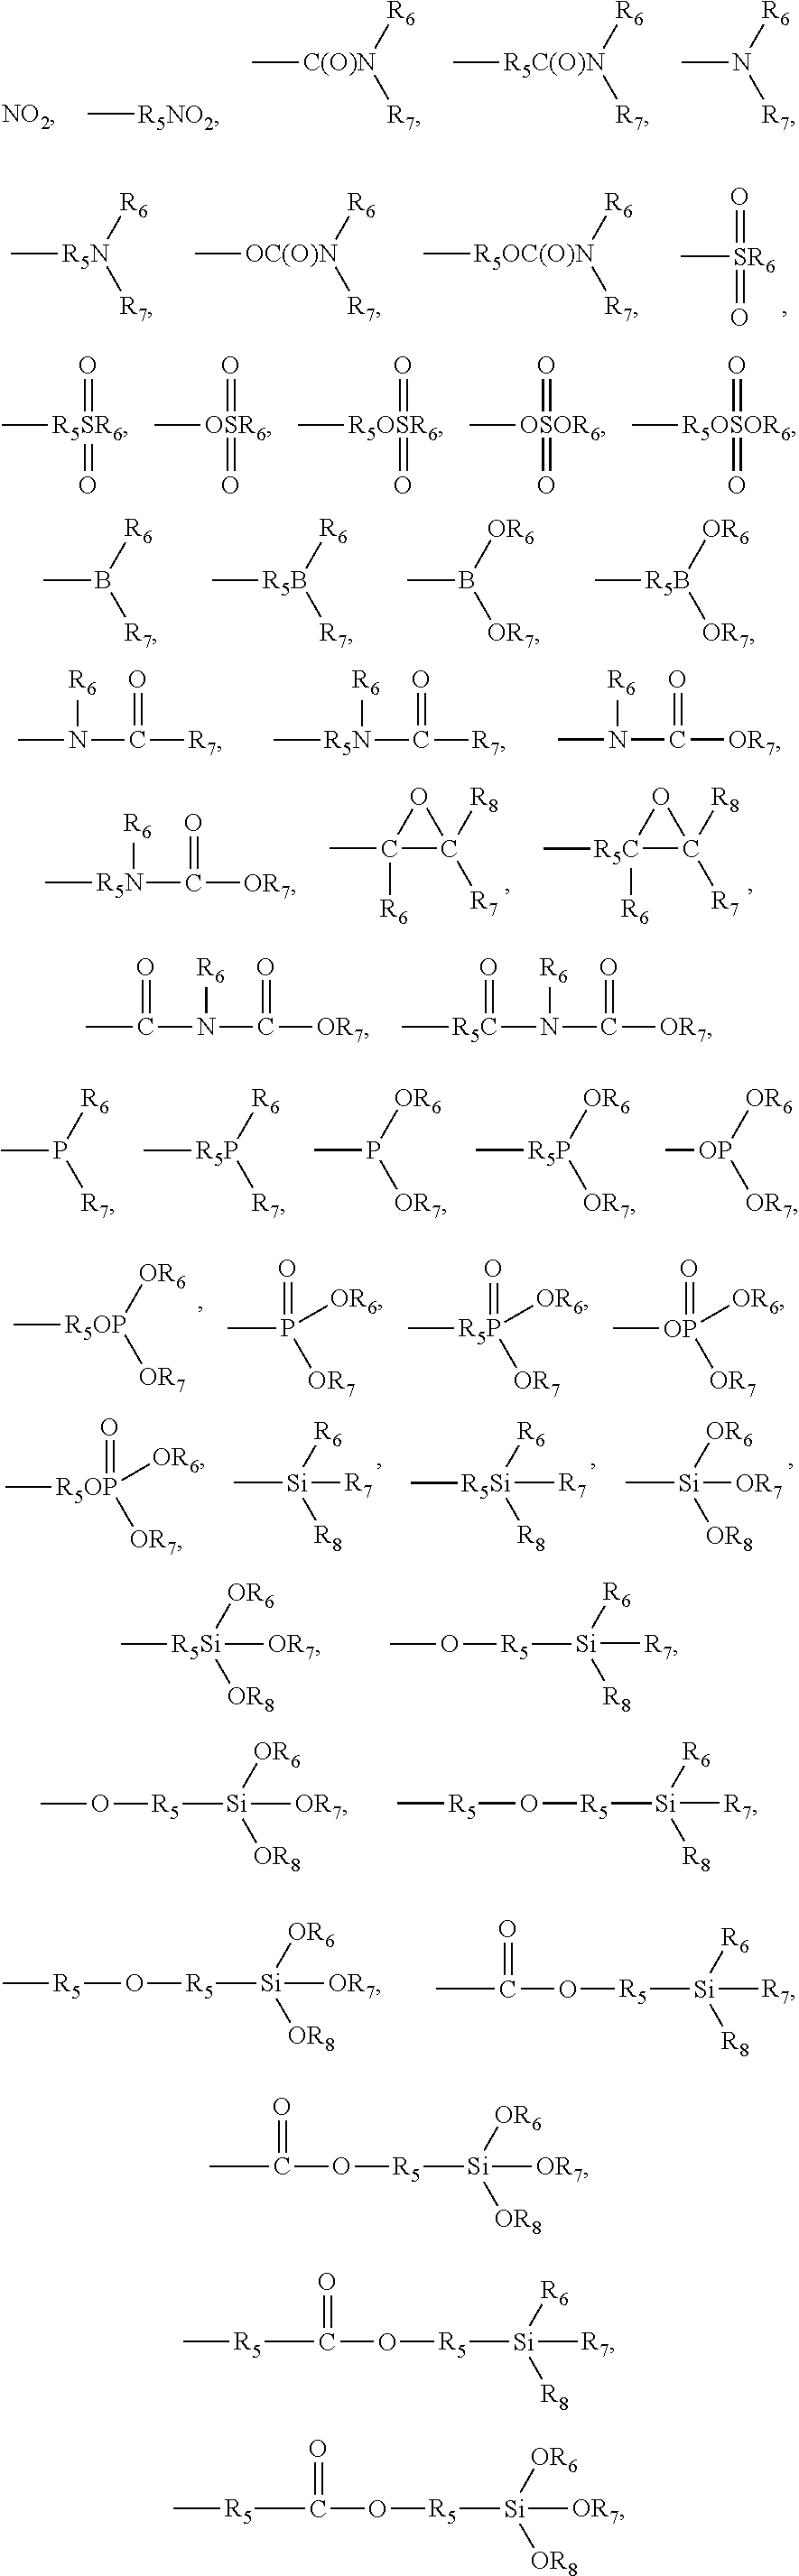 Us8946366b2 Cyclic Olefin Compound Photoreactive Polymer And Acac Ssr Wiring Figure Us08946366 20150203 C00018